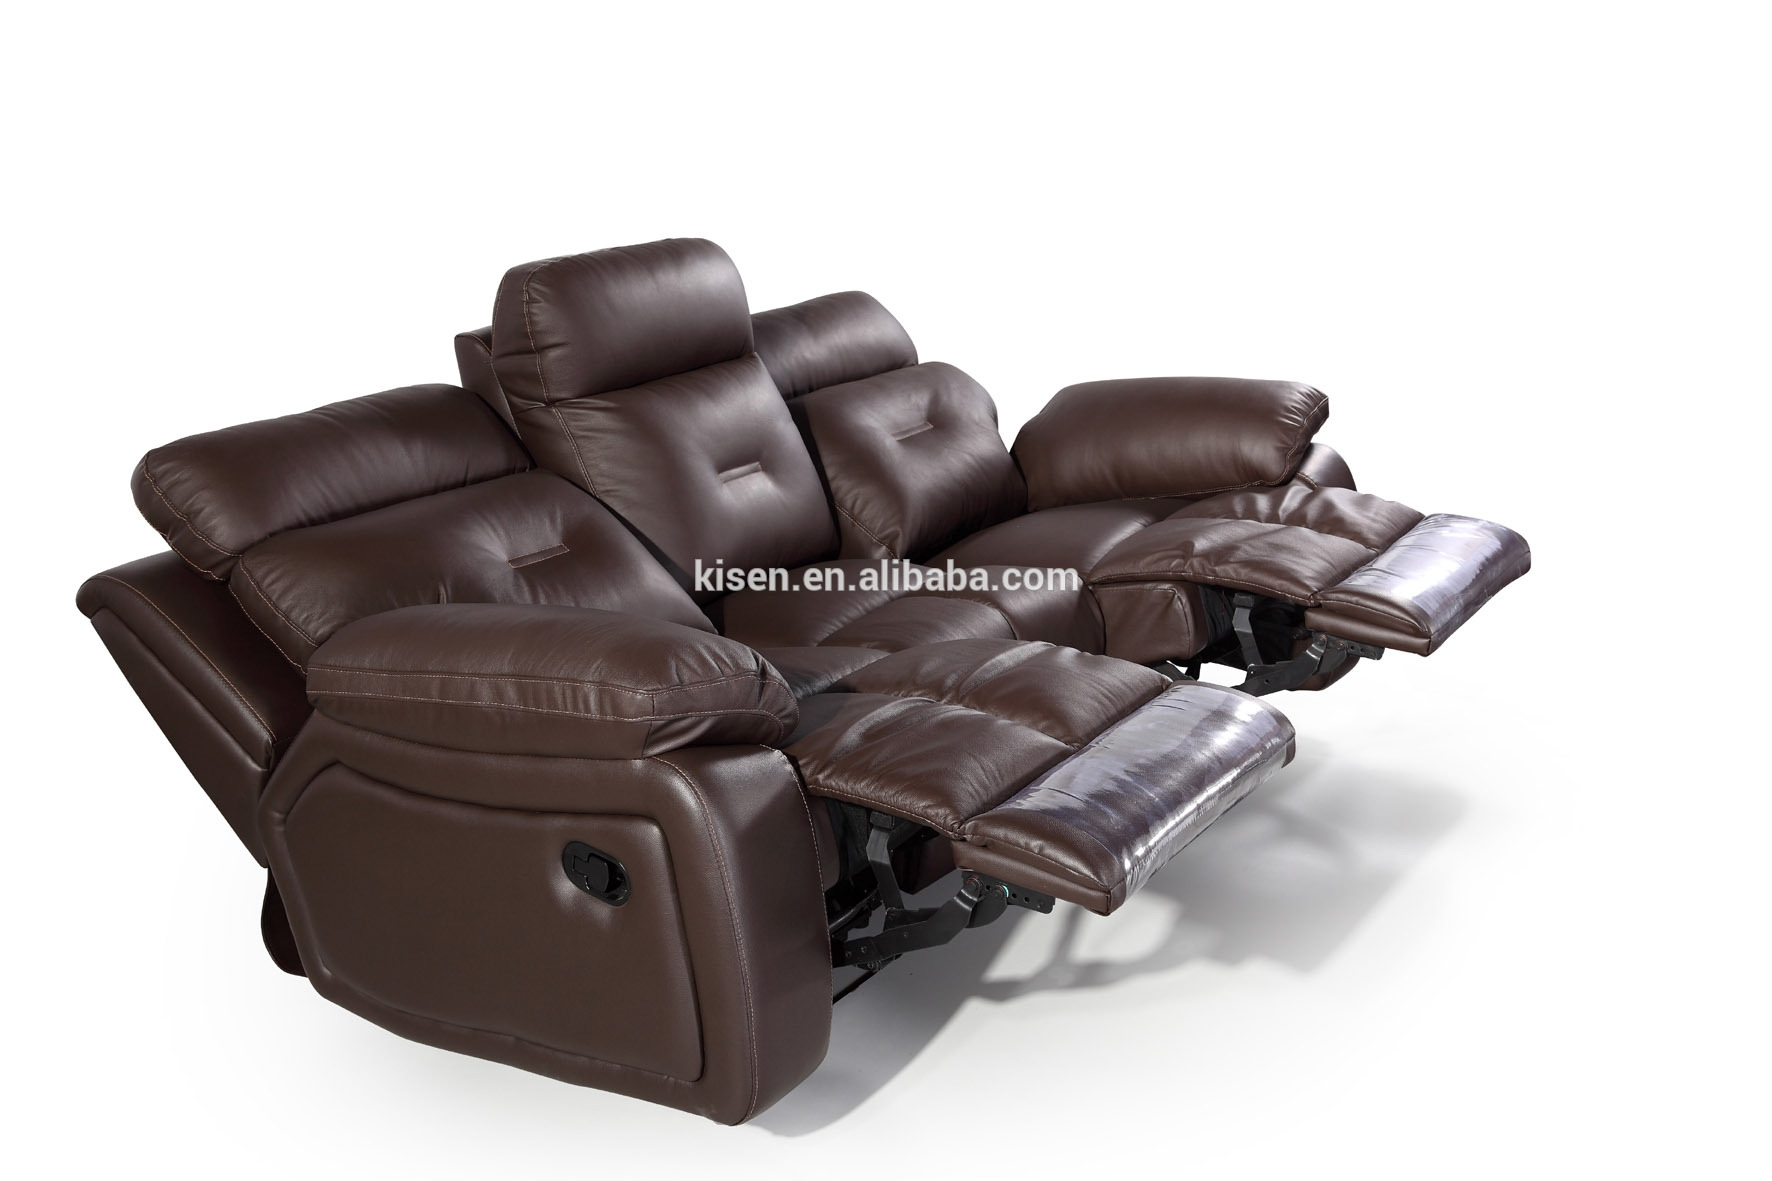 home theater chair repair chairs for handicapped berkline reclining sofa the best reviews